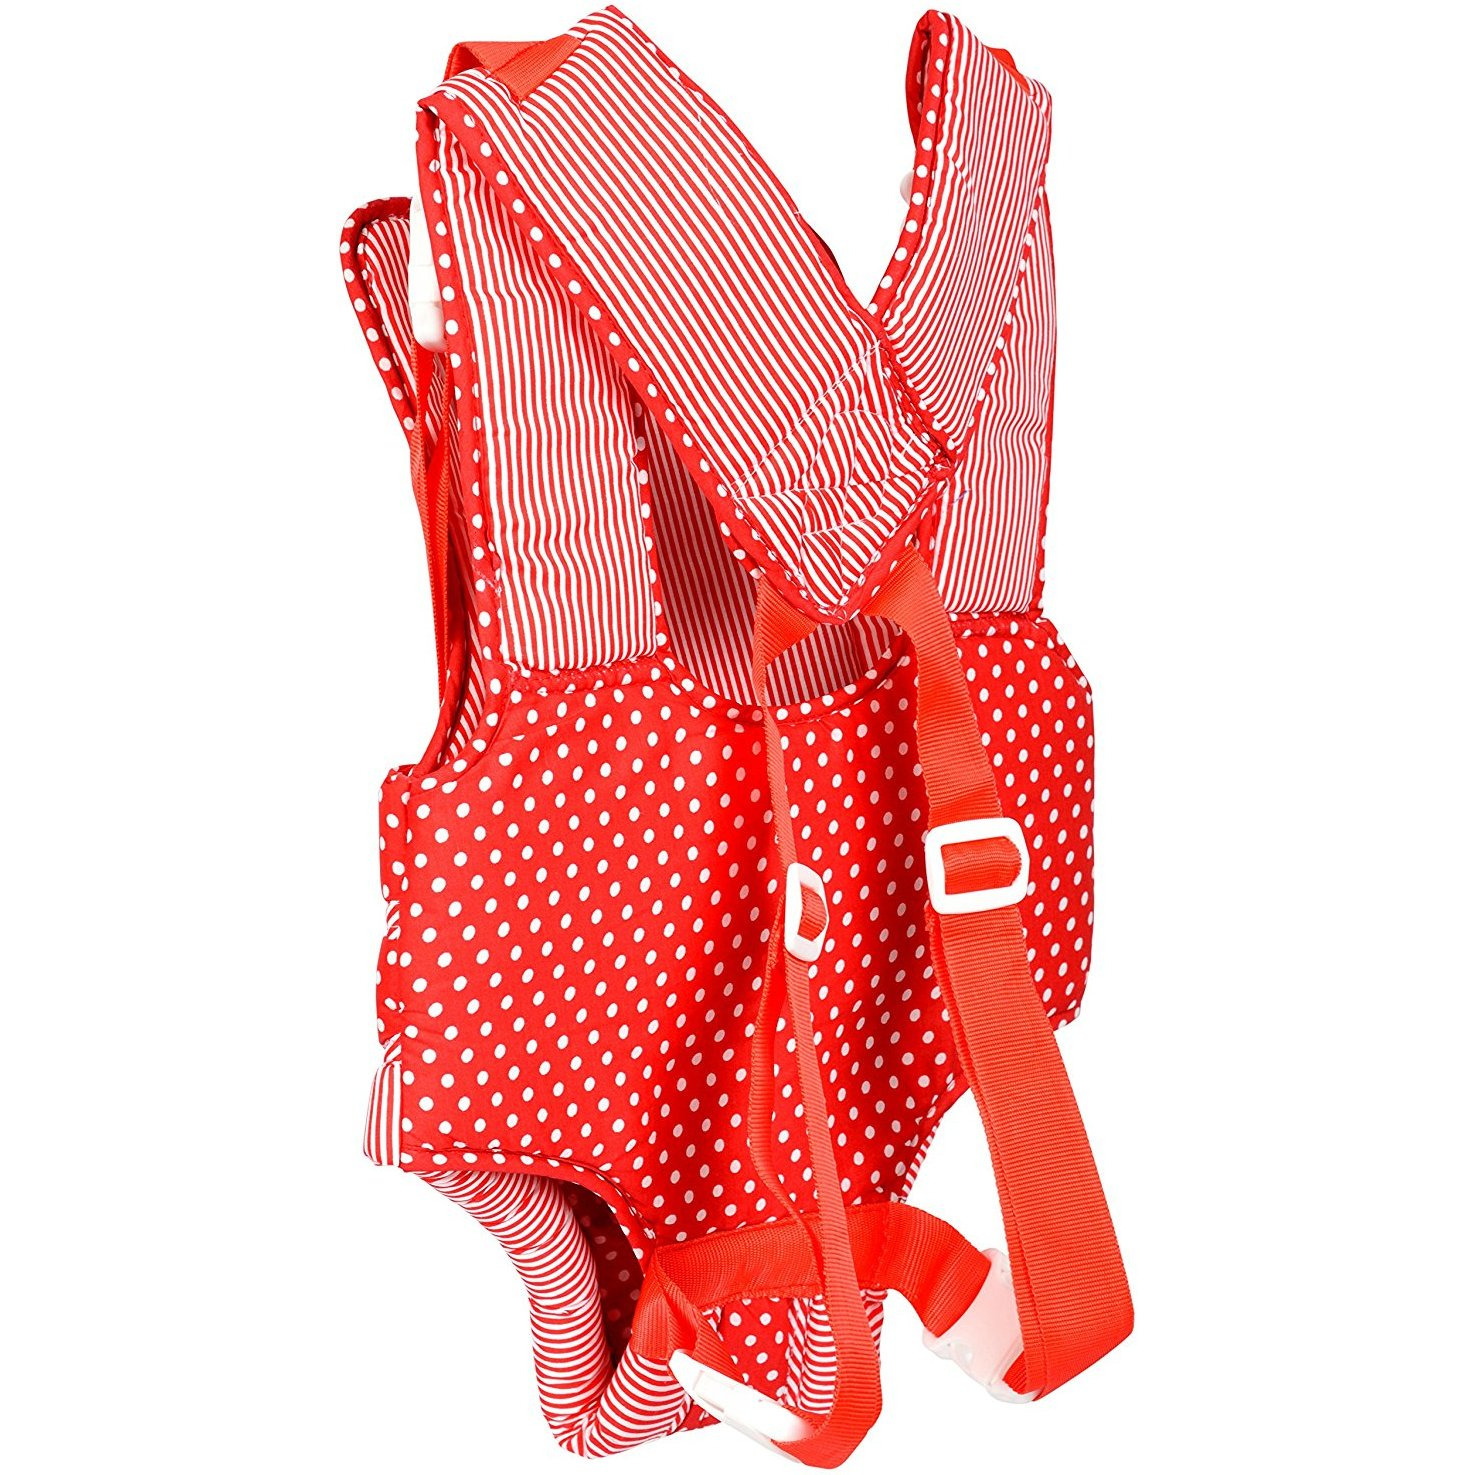 Love Baby Sleeping Carry Bag - DK02 Red